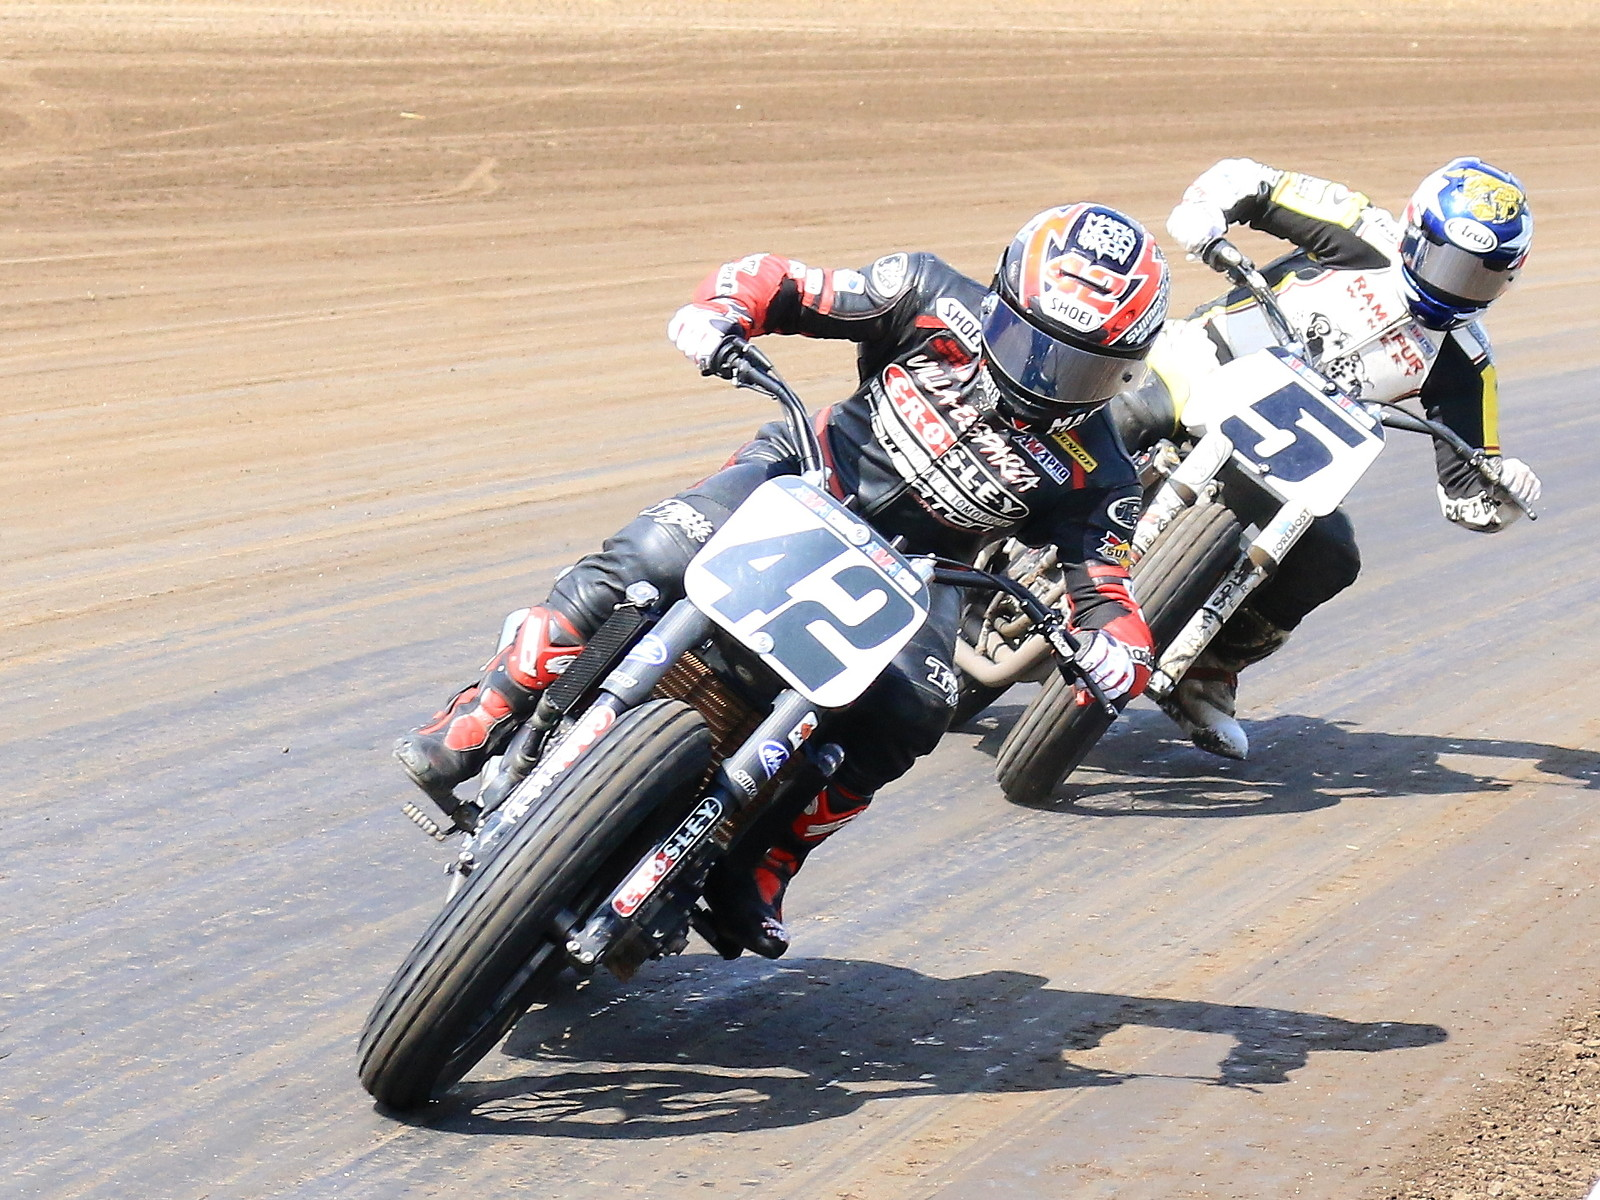 Springfield Mile II Labor Day 2014 - mharmon - Motocross Pictures - Vital MX